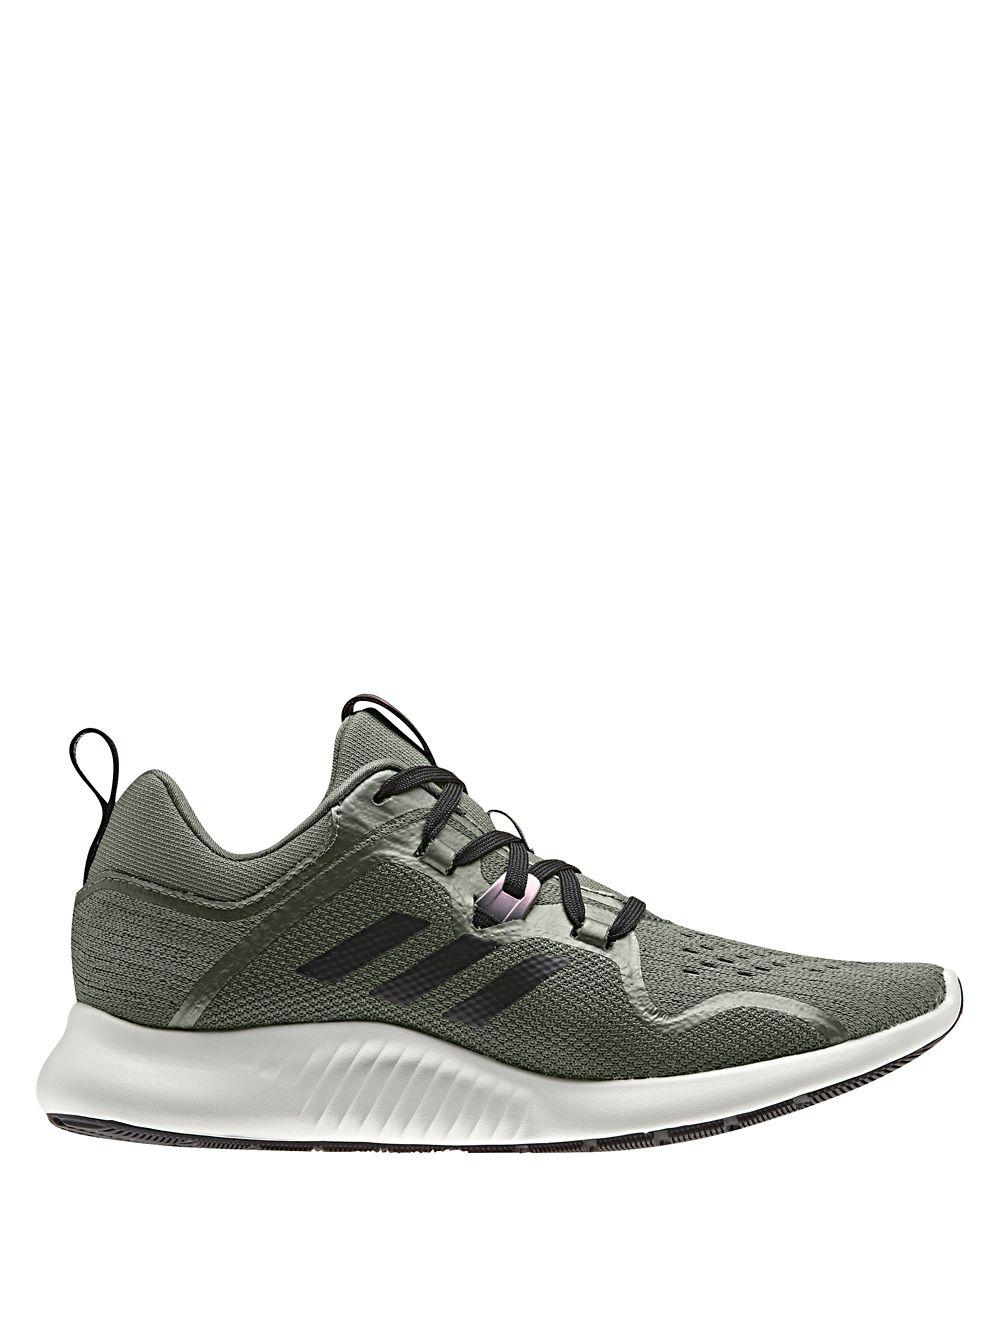 275c78498 Lyst - Adidas Edgebounce Athletic Sneakers in Green